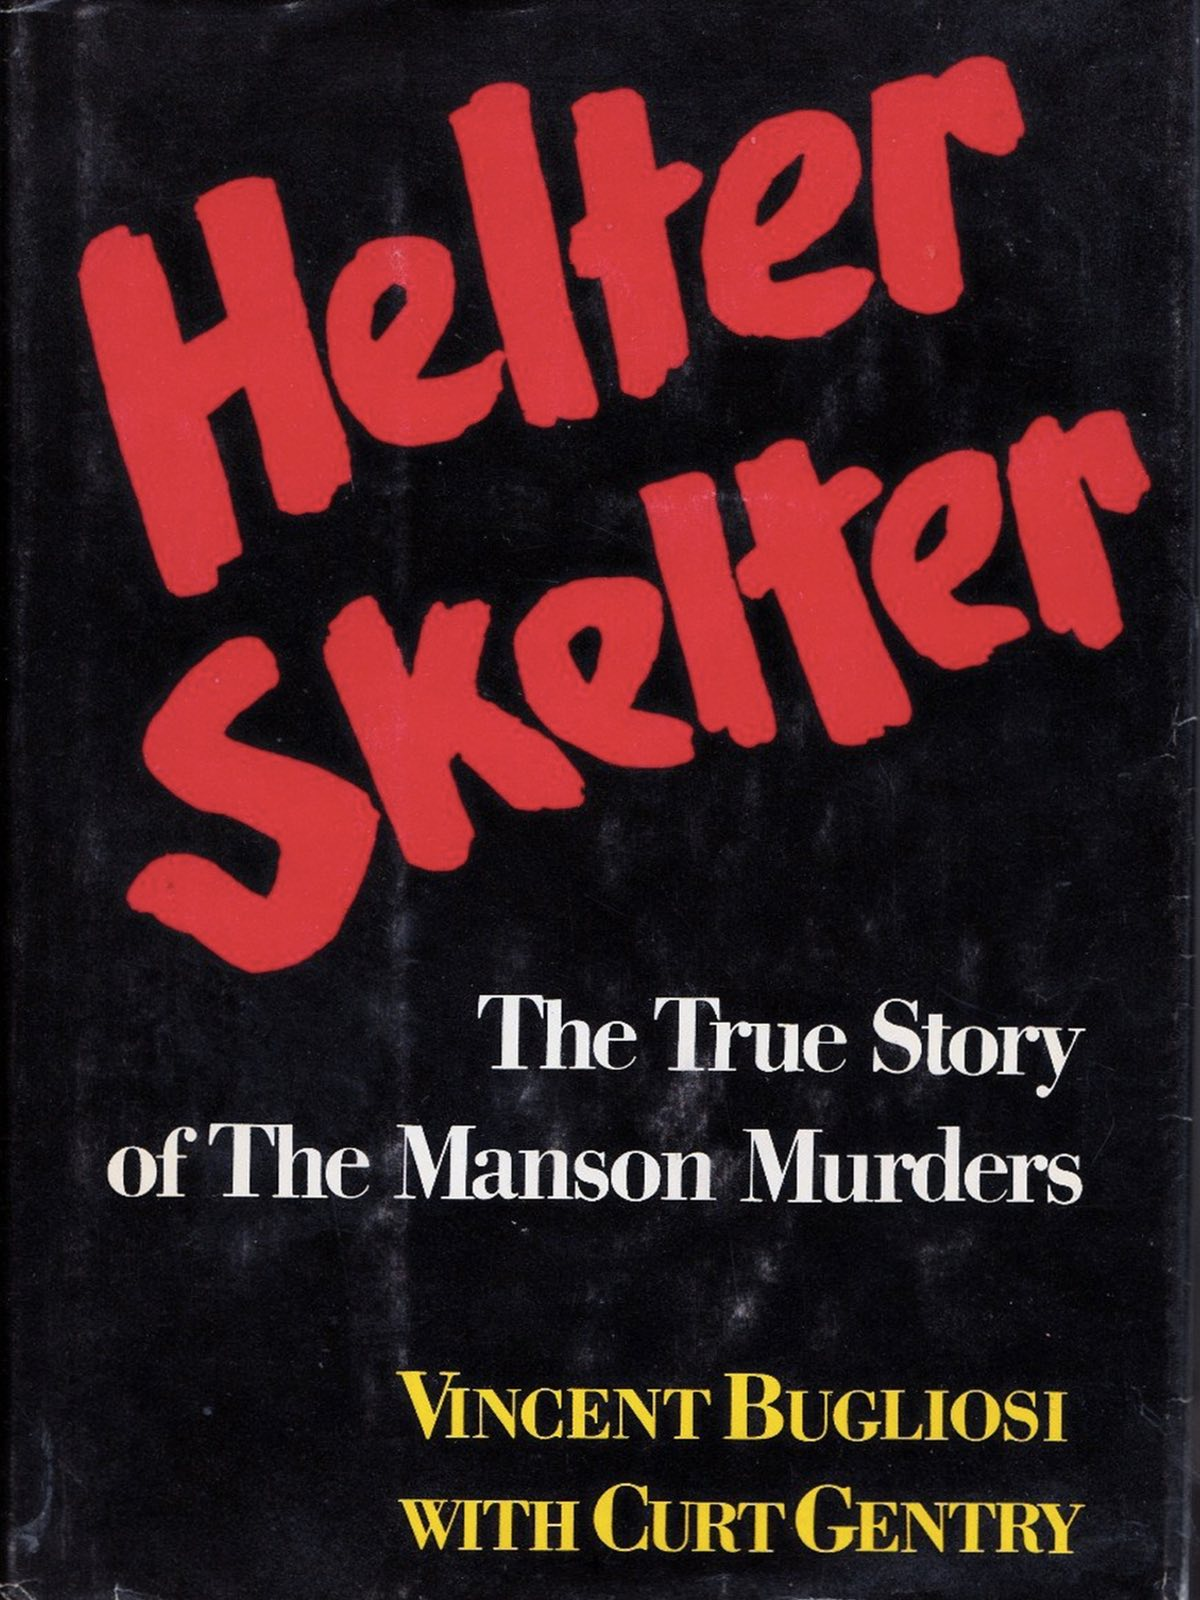 Helter Skelter is the best selling true crime book of all time